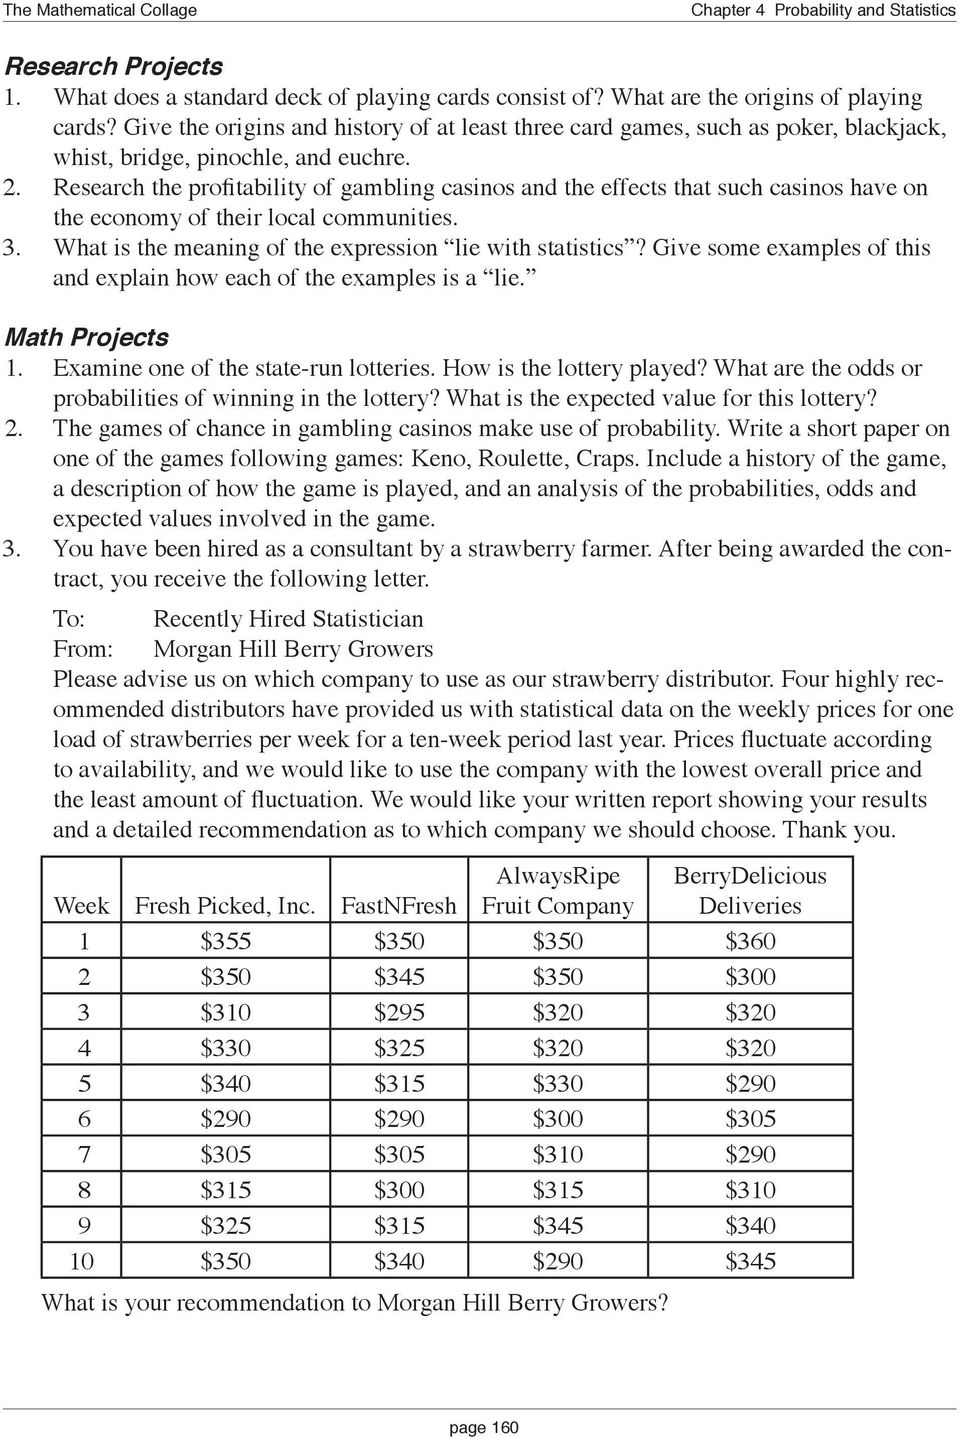 Blackjack Strategy: Easy guide with pictures for any hand, Chapters 16-20